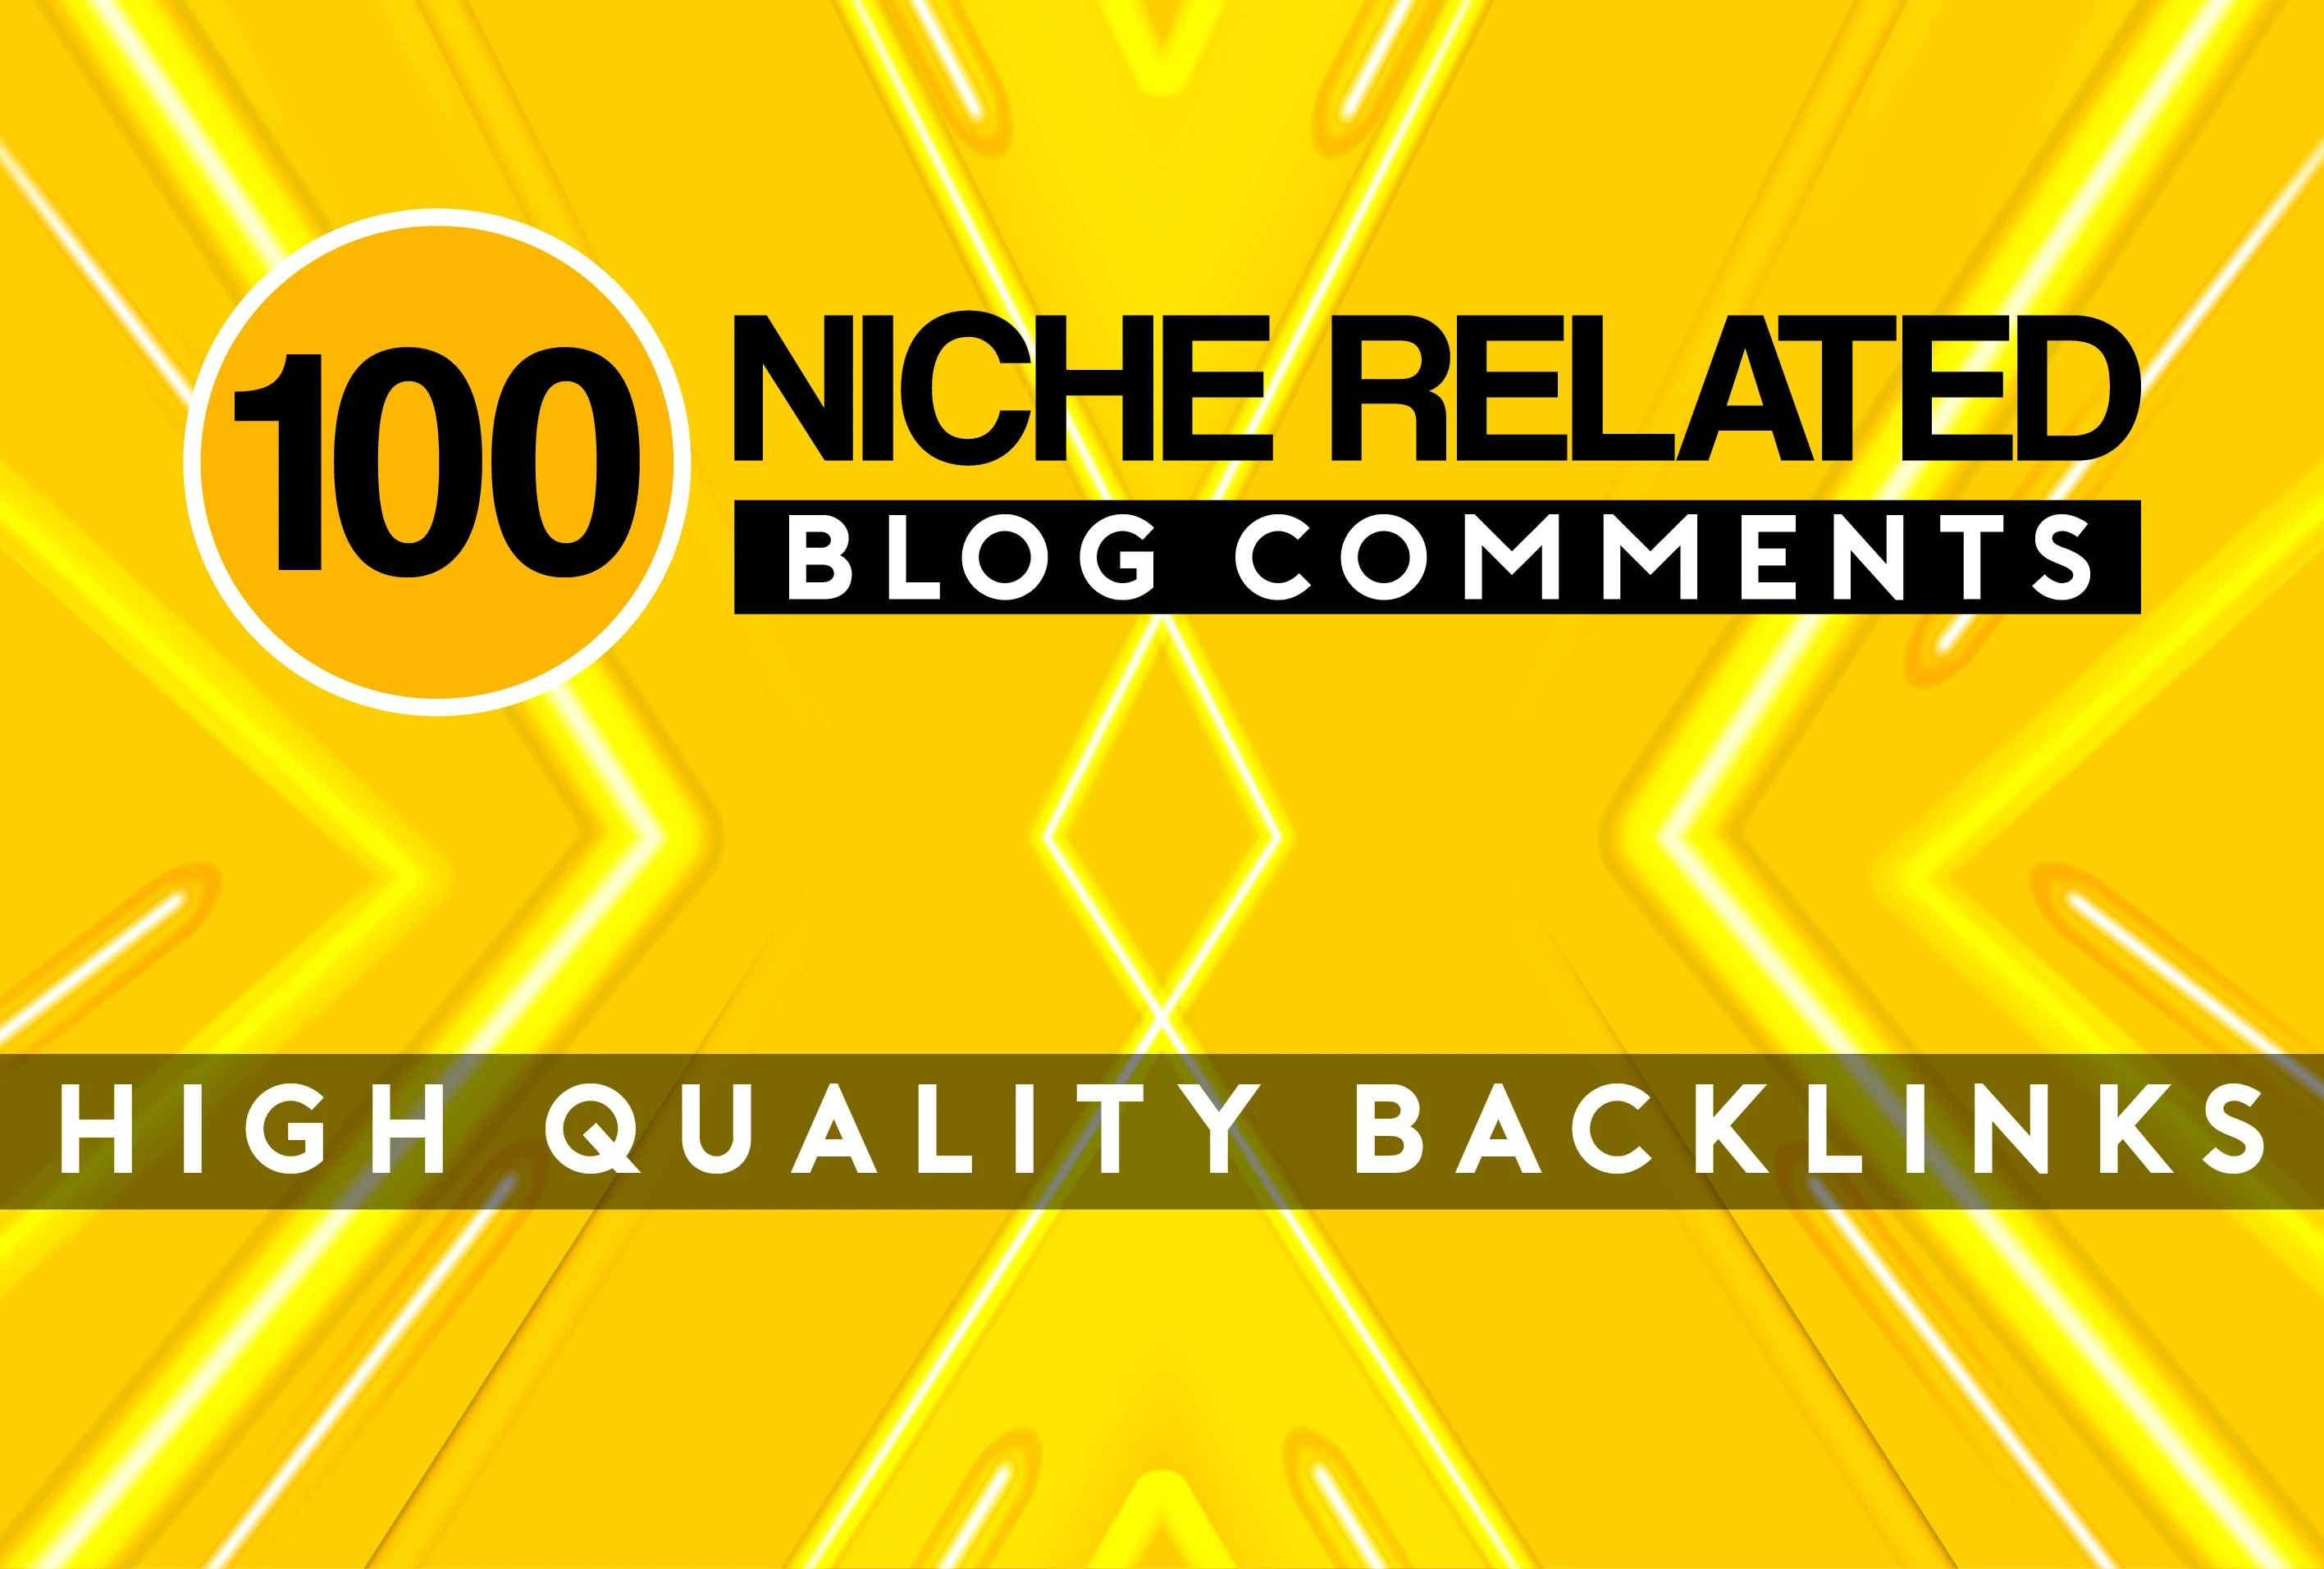 I will provide 100 niche relevant blog comments